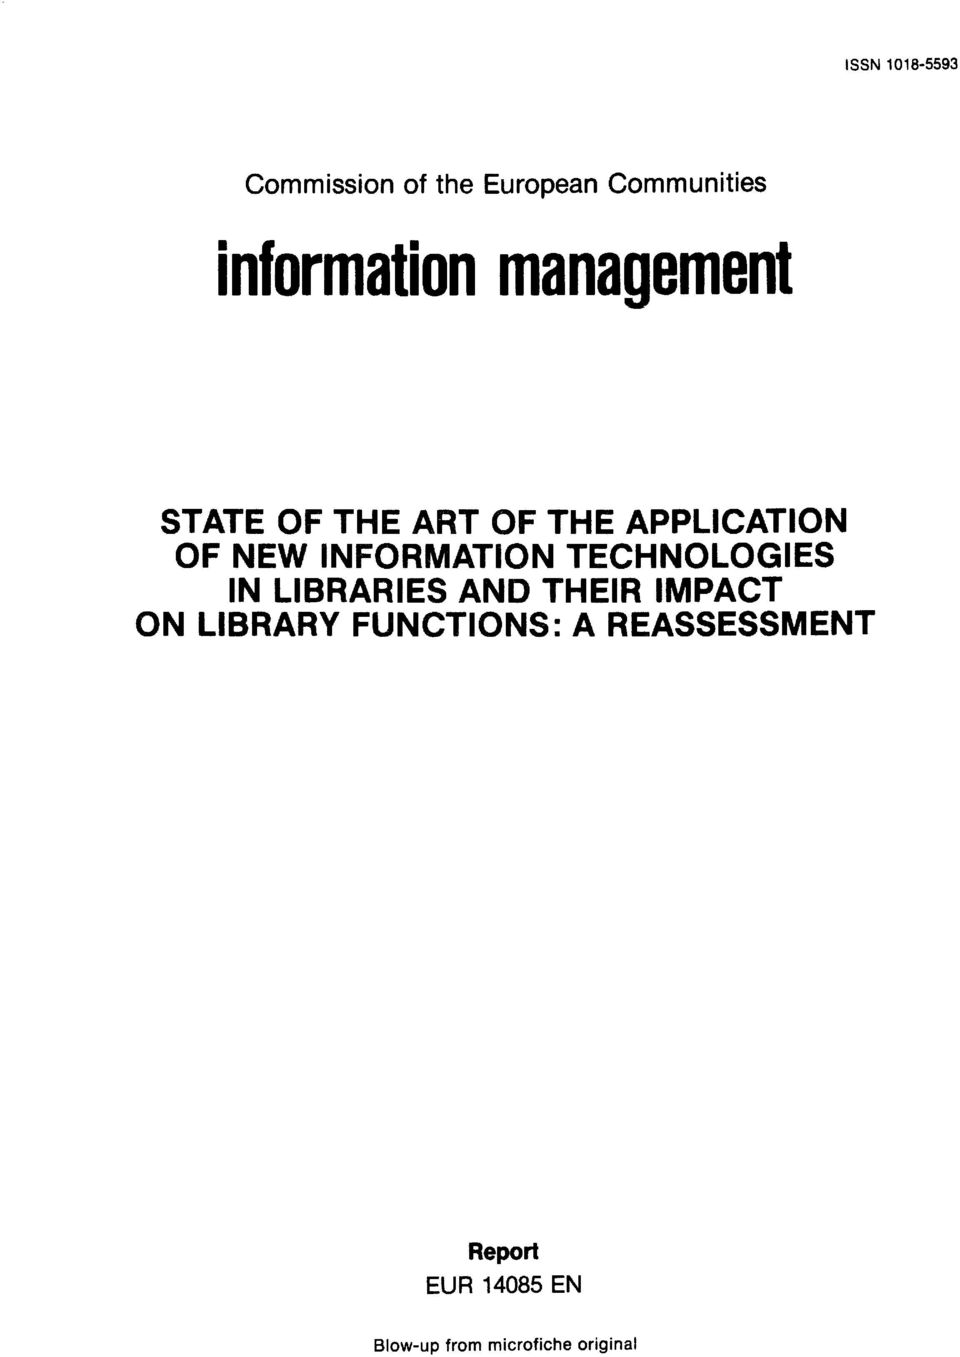 INFORMATION TECHNOLOGIES IN LIBRARIES AND THEIR IMPACT ON LIBRARY